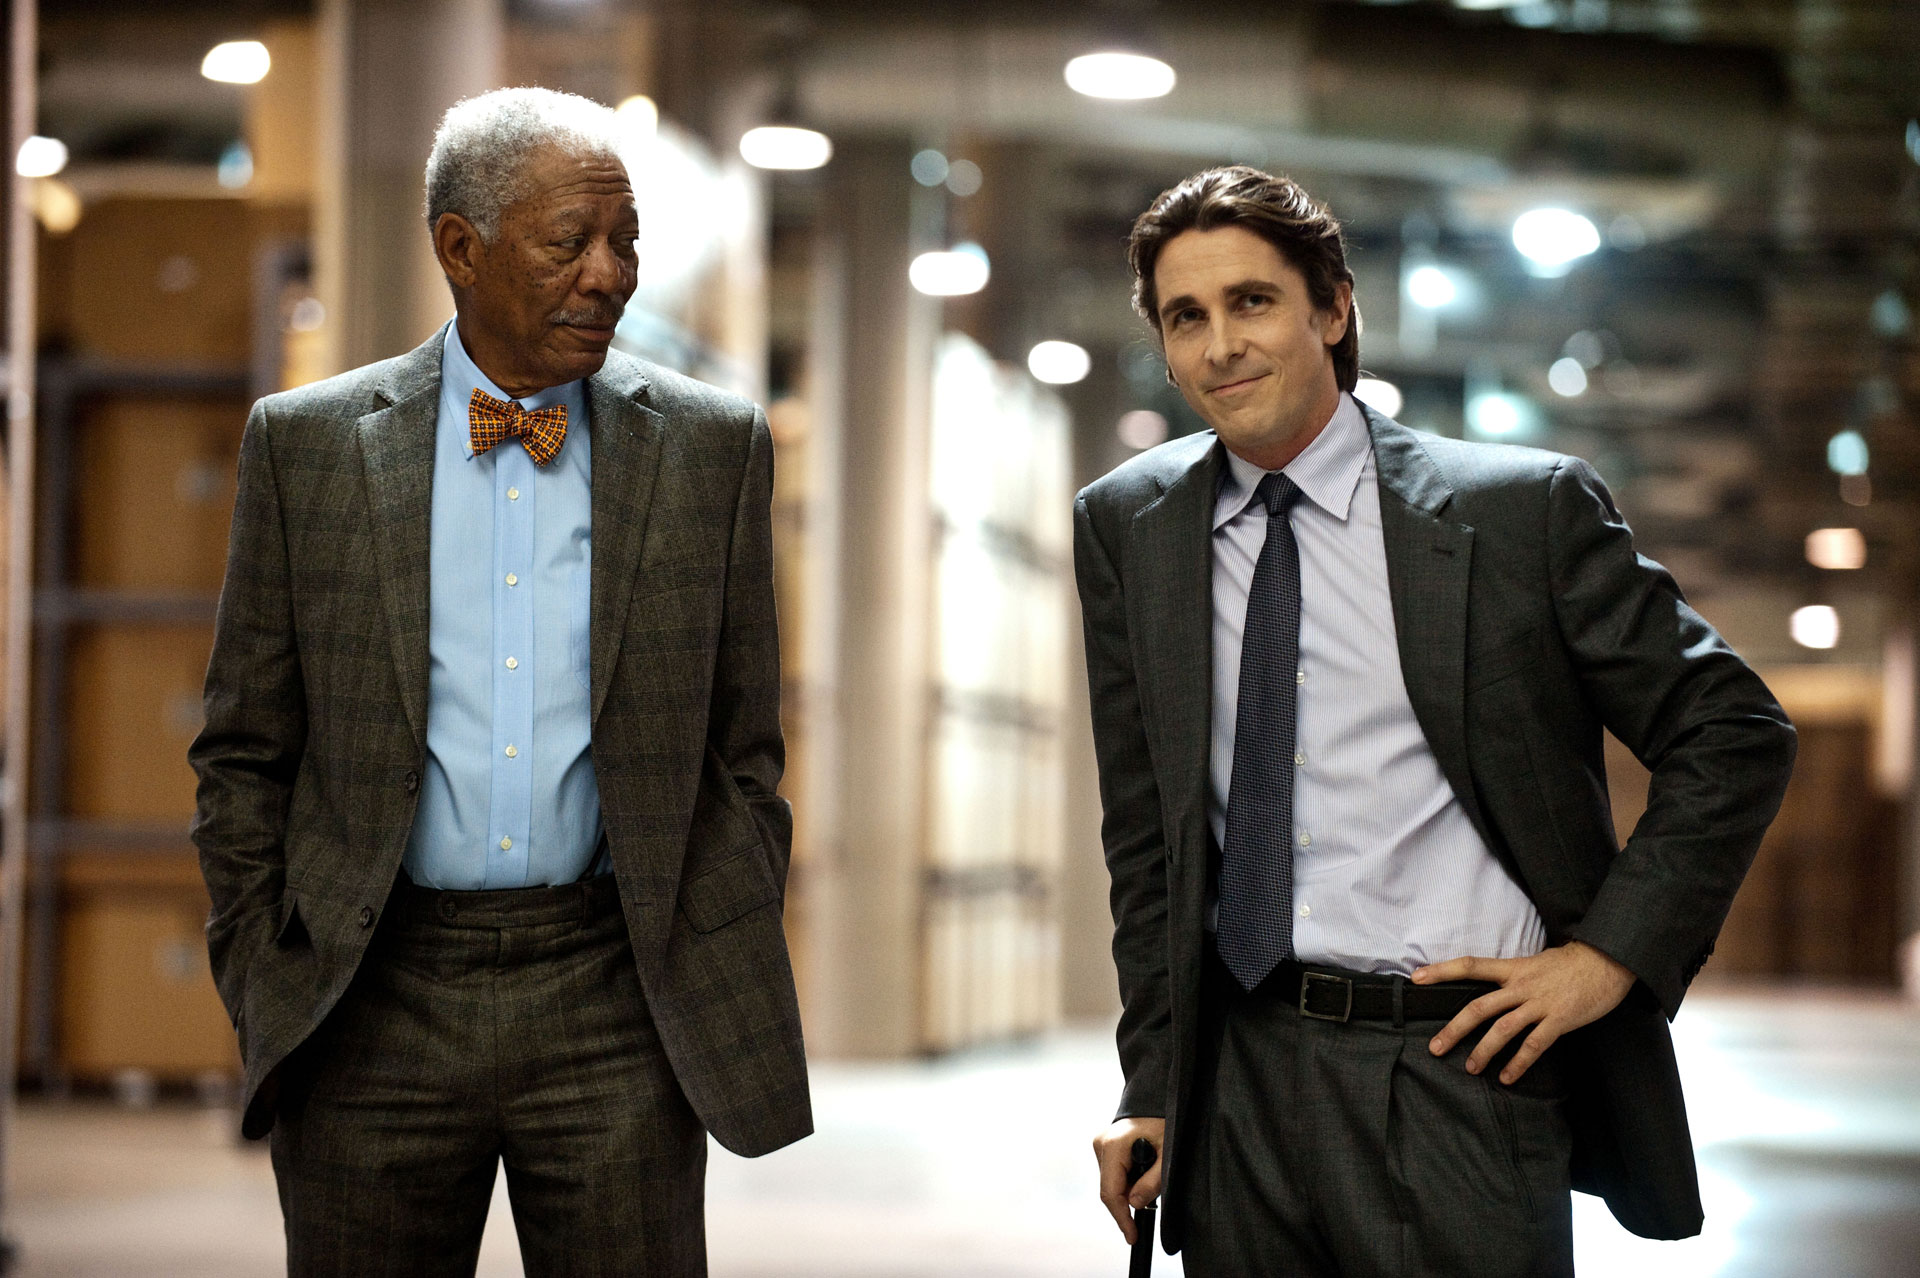 More The Dark Knight Rises Images Hit the Streets